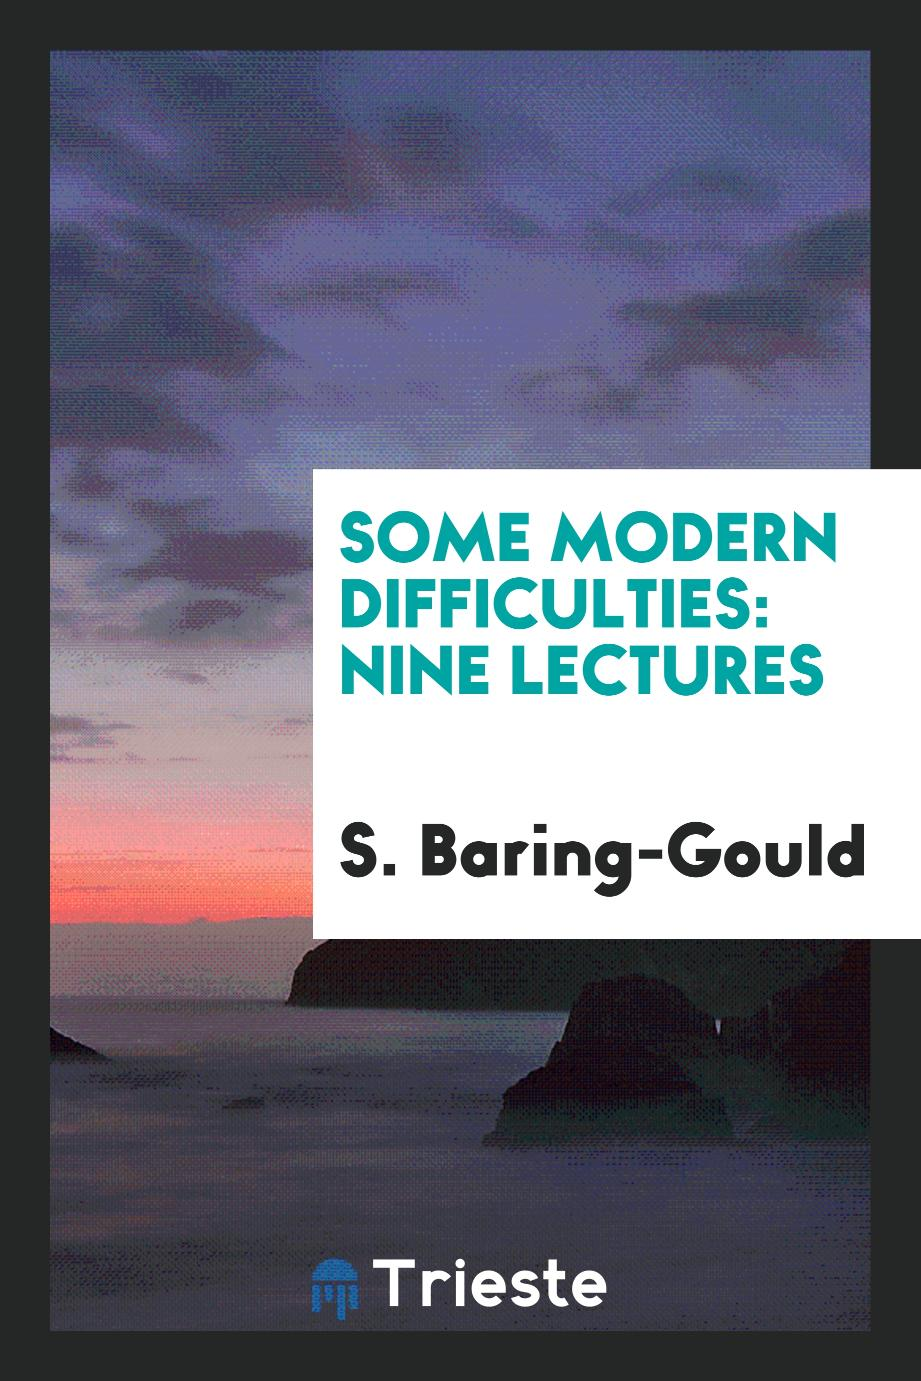 Some modern difficulties: nine lectures